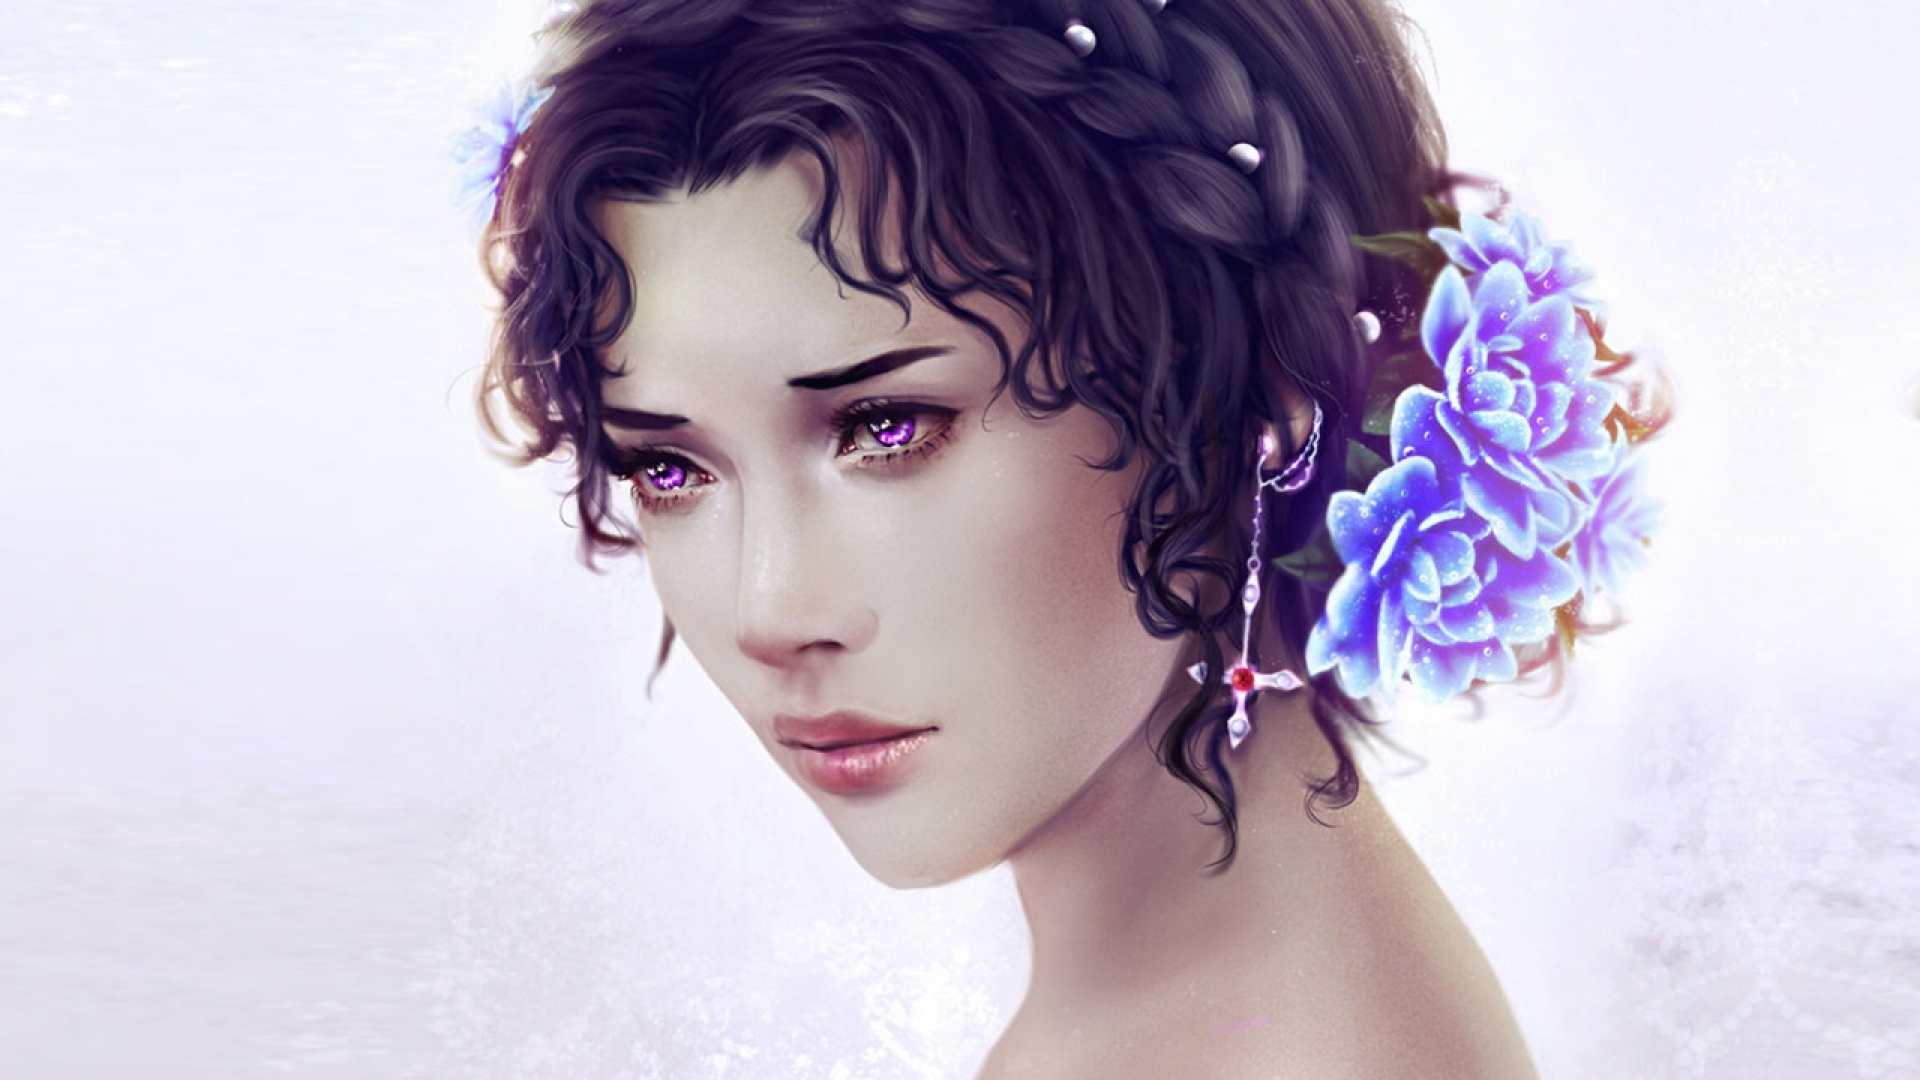 girl-eyes-grief-hairdress-flowers-1920x1080